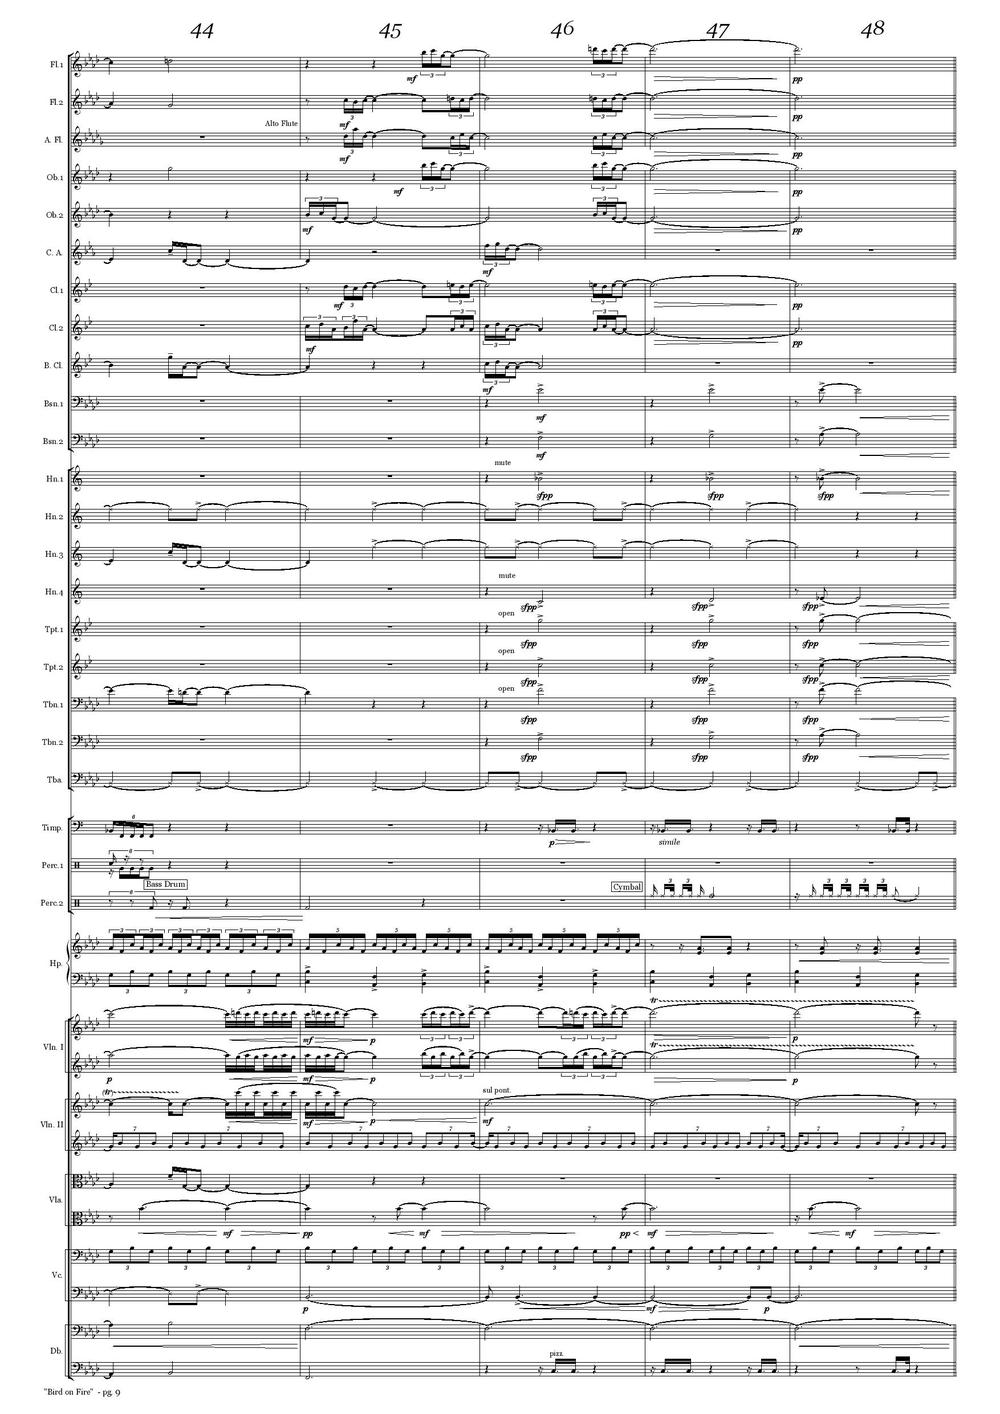 Bird on Fire - score-page-012.jpg